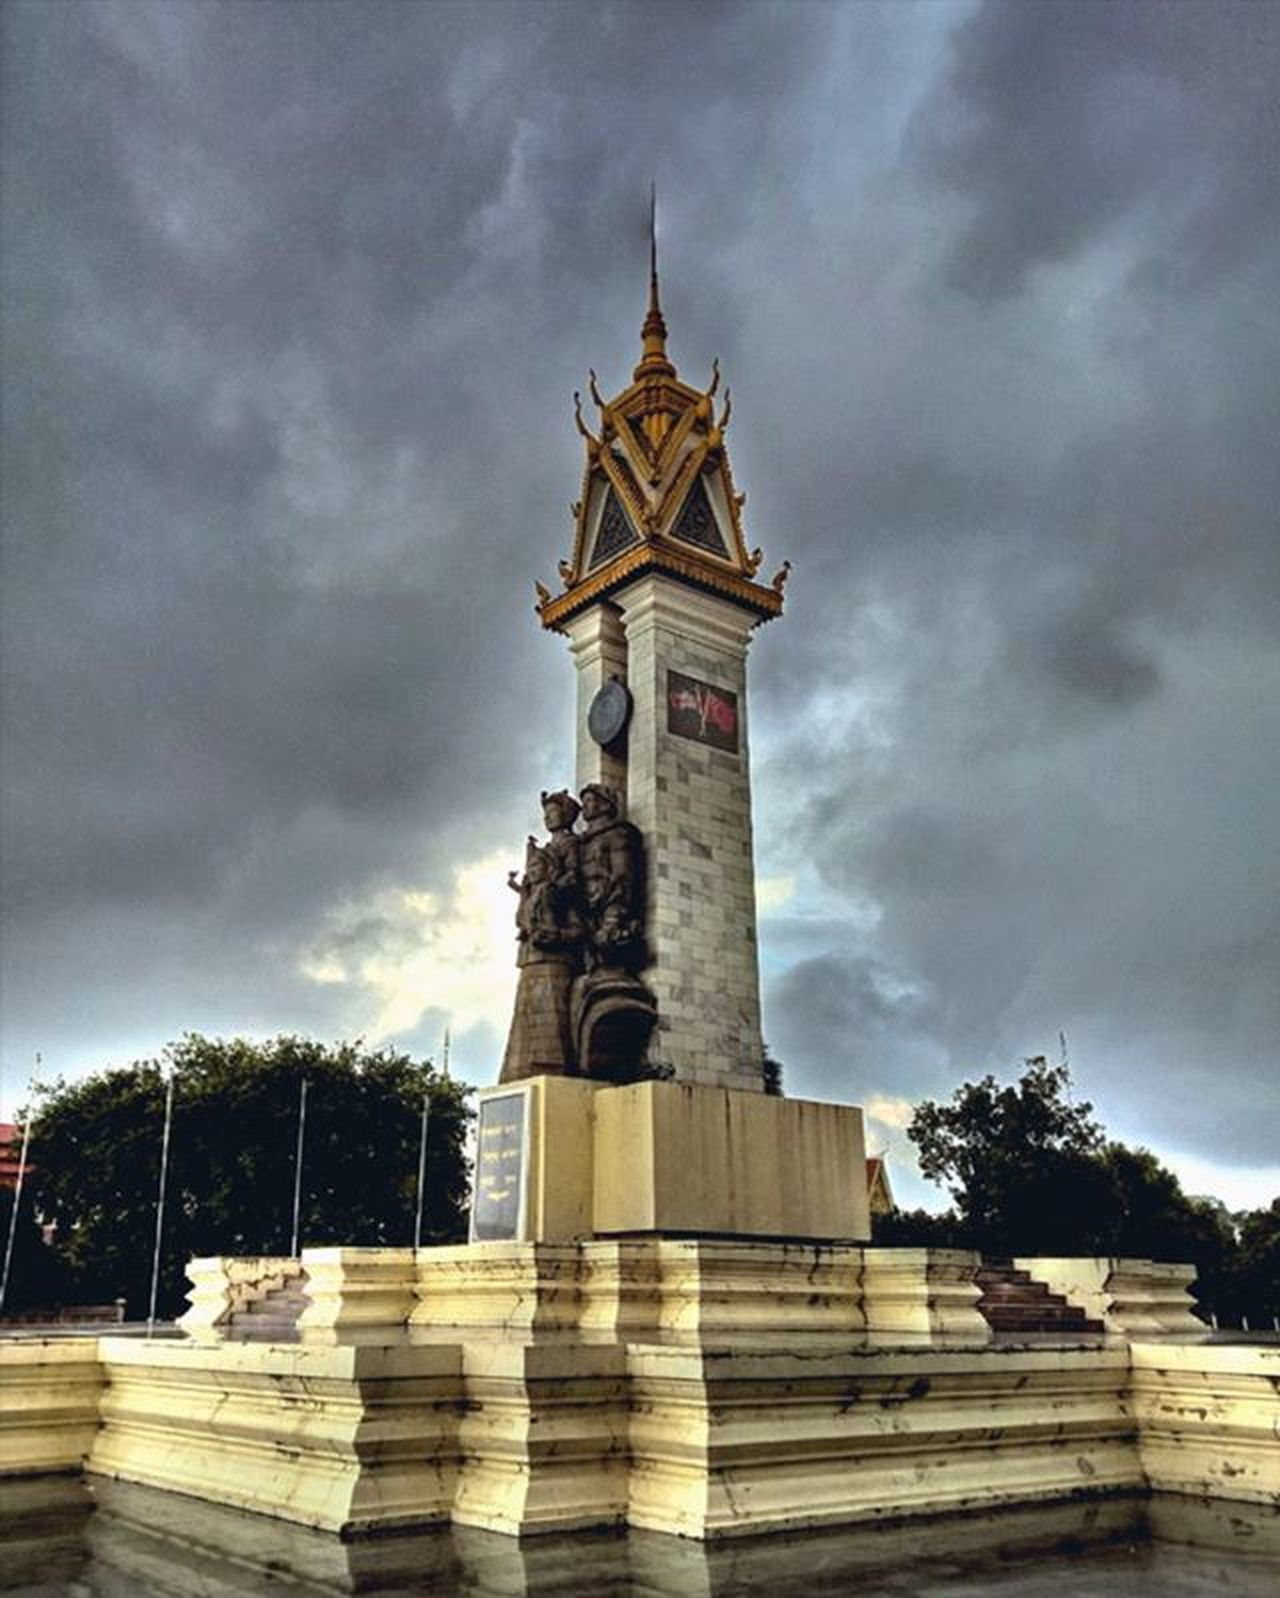 Cambodia Vietnam Friendship Monument. Lumia930 Mobilephotography WindowsPhonePhotography WeLoveLumia ShotOnMyLumia  Lumiaography Theappwhisperer Makemoments MoreLumiaLove GoodRadShot TheLumians Fhotoroom Lumia PicHitMe EyeEm Eyewm_o MenchFeature Photography Nban NbanFamily Pixelpanda Visitorg Aop_Lab Natgeo Natgeotravel NatGeoYourShot Cambodia PhnomPenh @fhotoroom_ @thelumians @lumiavoices @pichitme @windowsphonephotography @microsoftwindowsphone @microsoftlumiaphotography @mobile_photography @moment_lens @goodradshot @mobilephotoblog @street_hunters @lumia @pixel_panda_ @eyeem_o @photocrowd @photoadvices @nothingbutanokia @nothinbutanokia